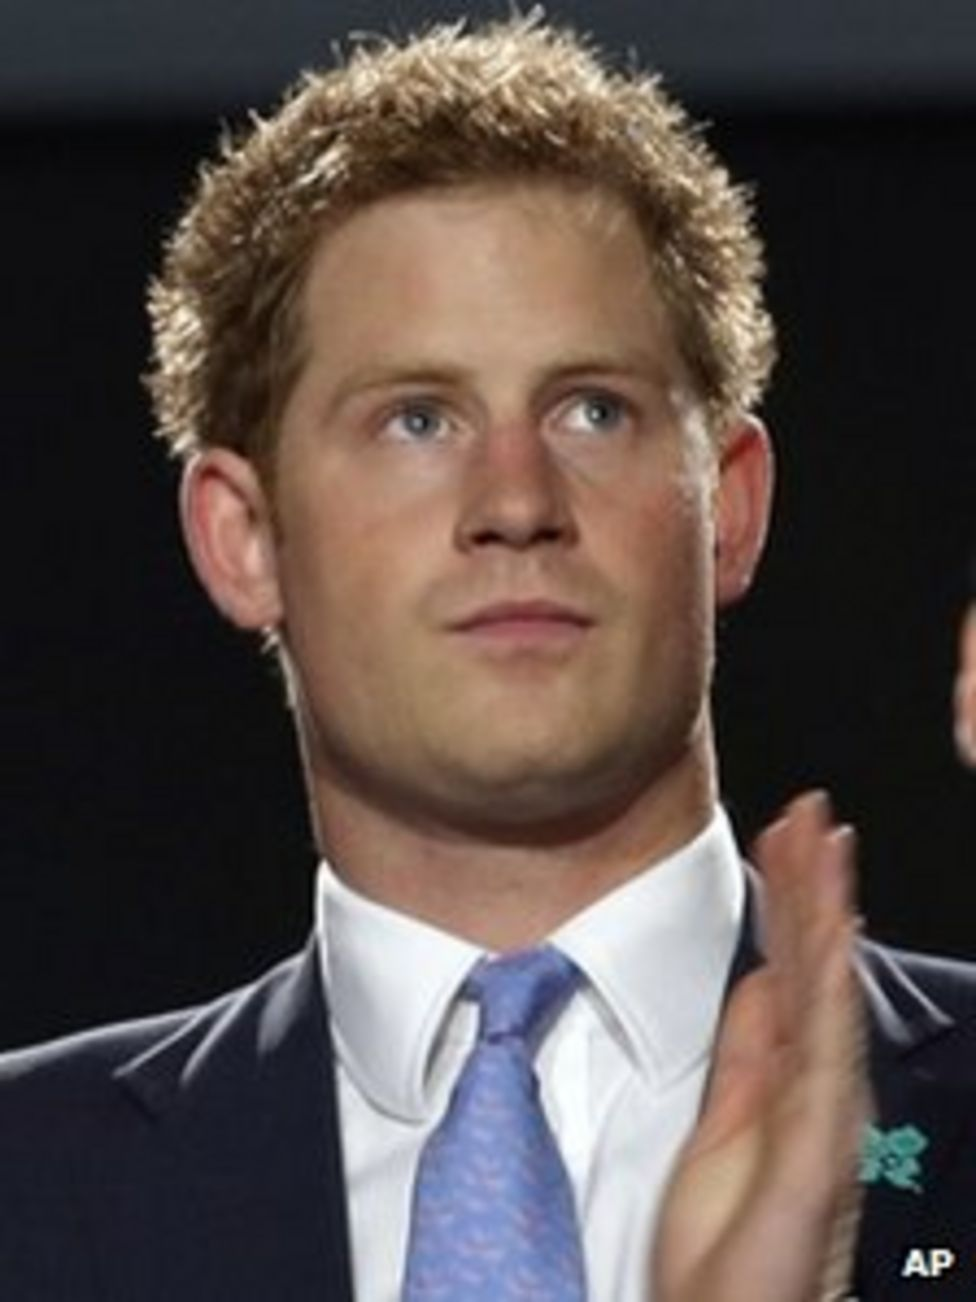 Prince Harry Discusses Those Naked Las Vegas Photos In